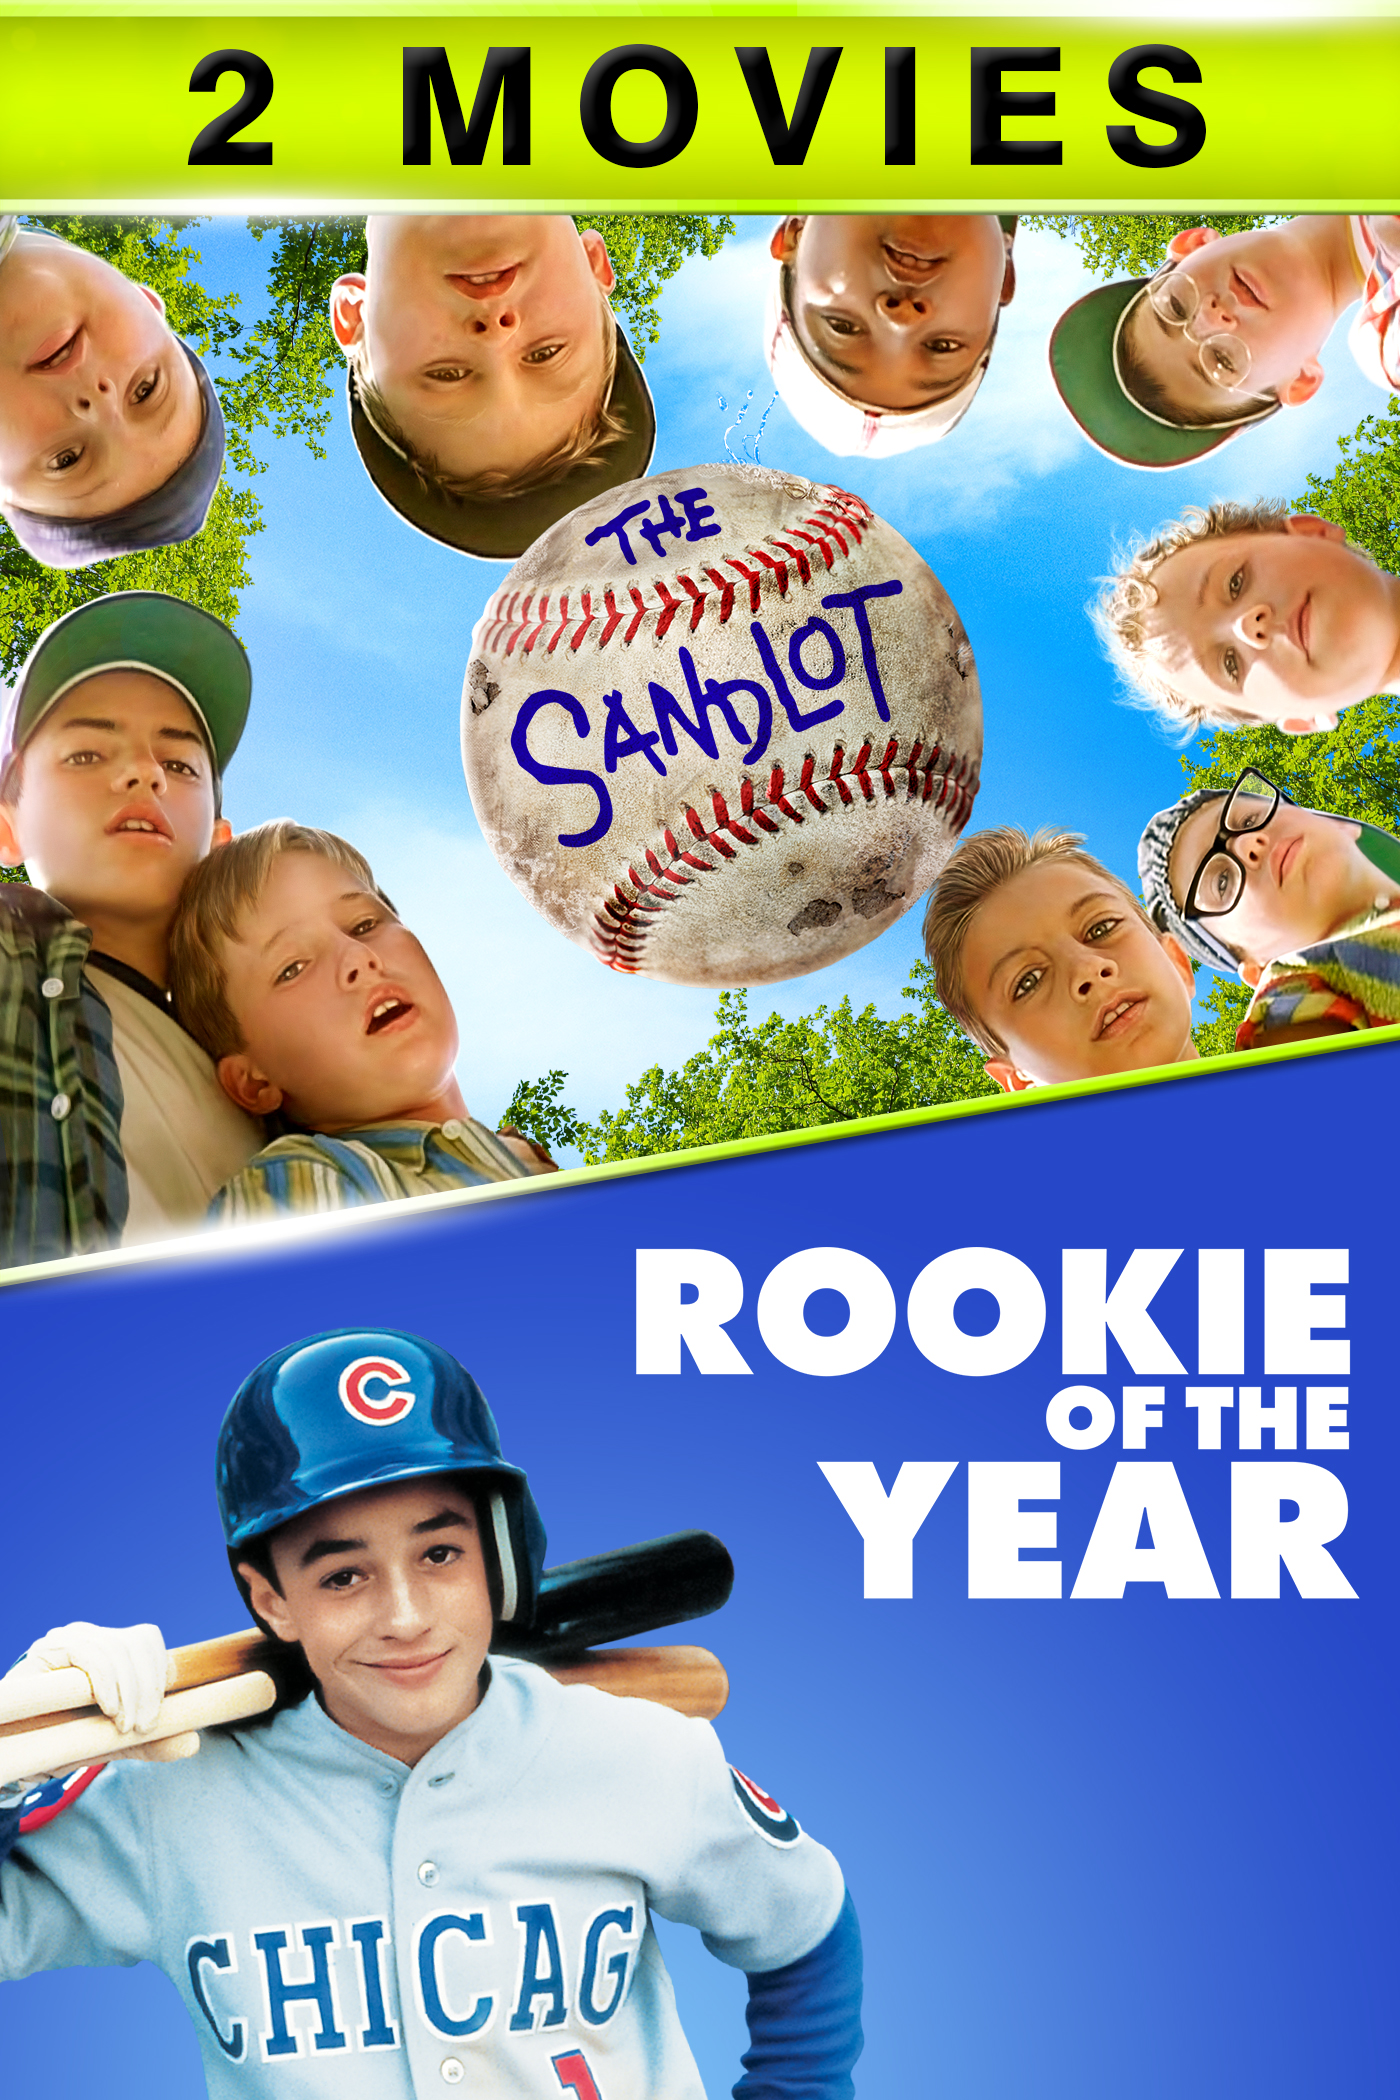 Rookie Of The Year Sandlot 2 Movie Bundle Buy Rent Or Watch On